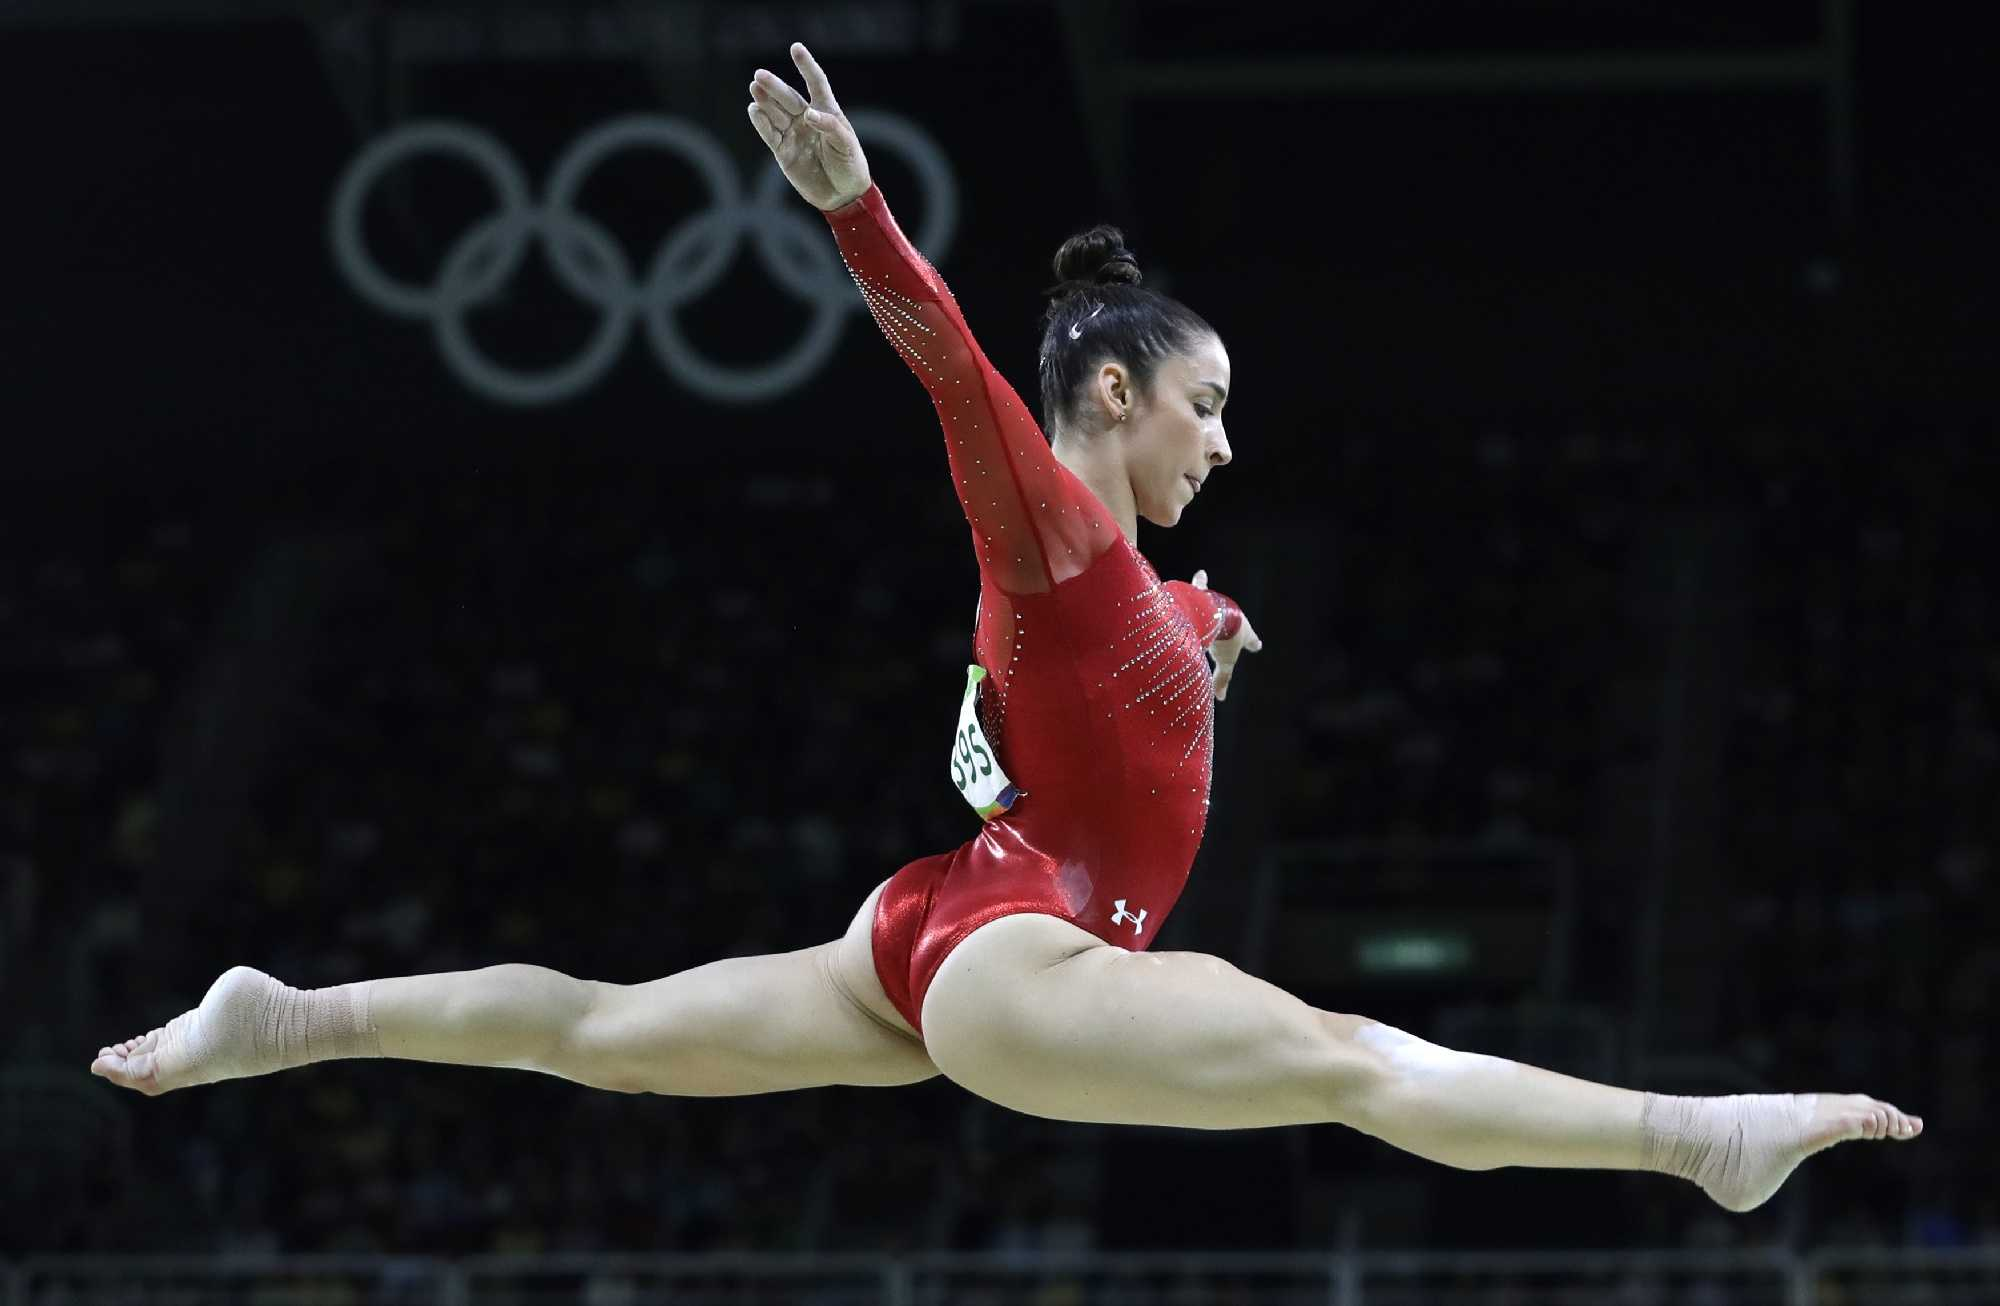 Olympic Gymnast Aly Raisman Says She Was Sexually Abused By Team Doctor